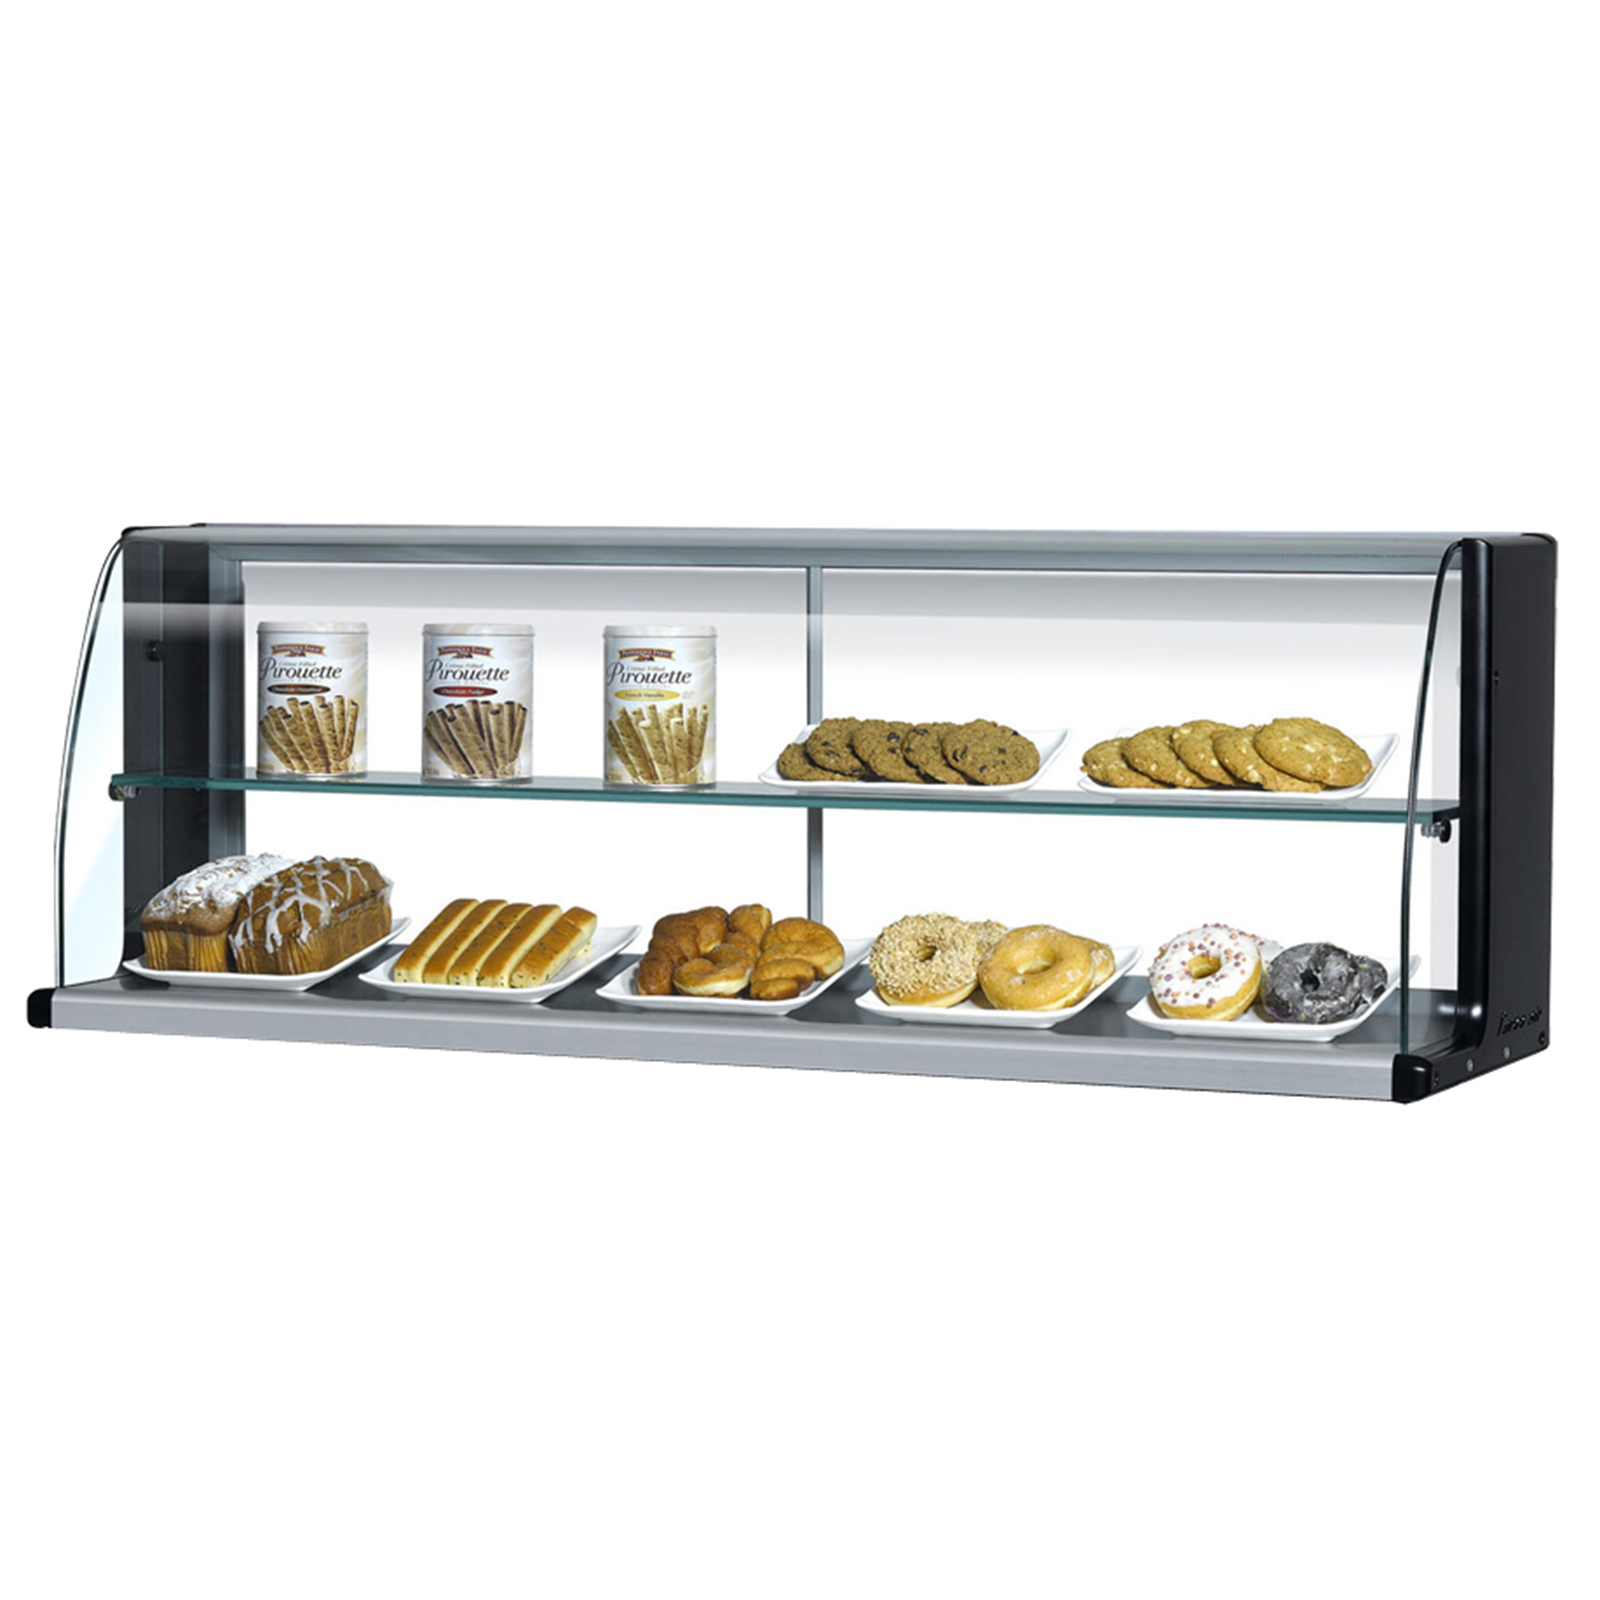 Turbo Air TOMD-50HB display case, non-refrigerated countertop